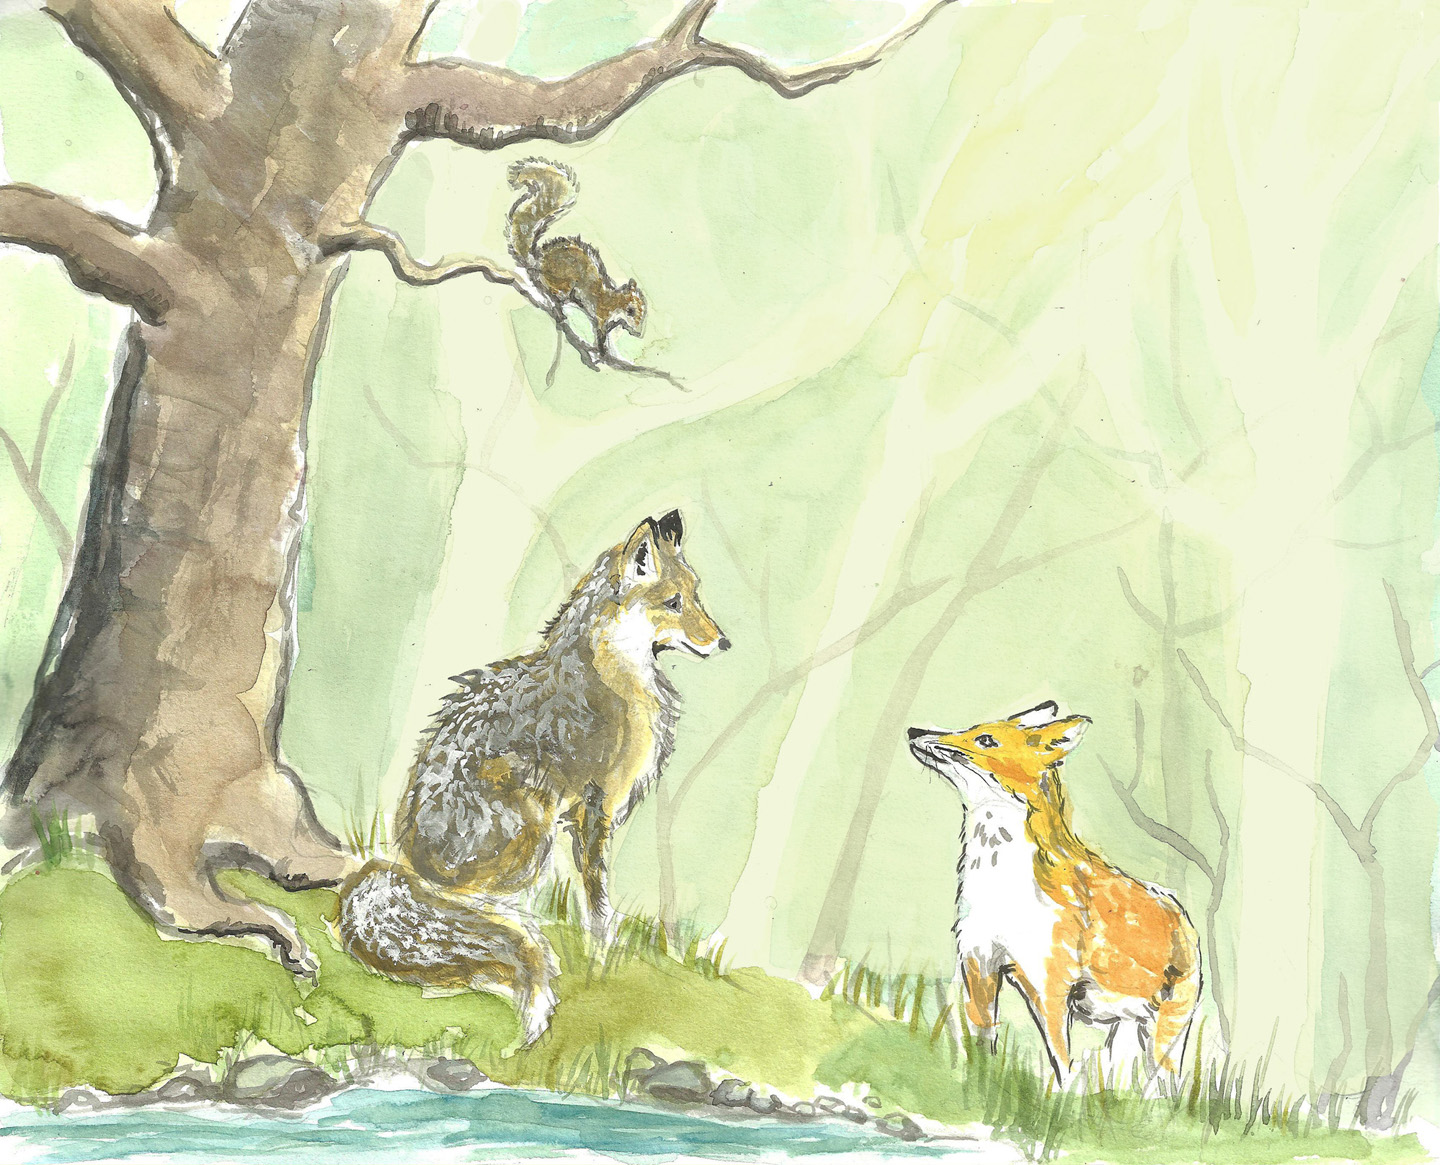 The Foxes Meet, 2014. Watercolor, ink, gouache.